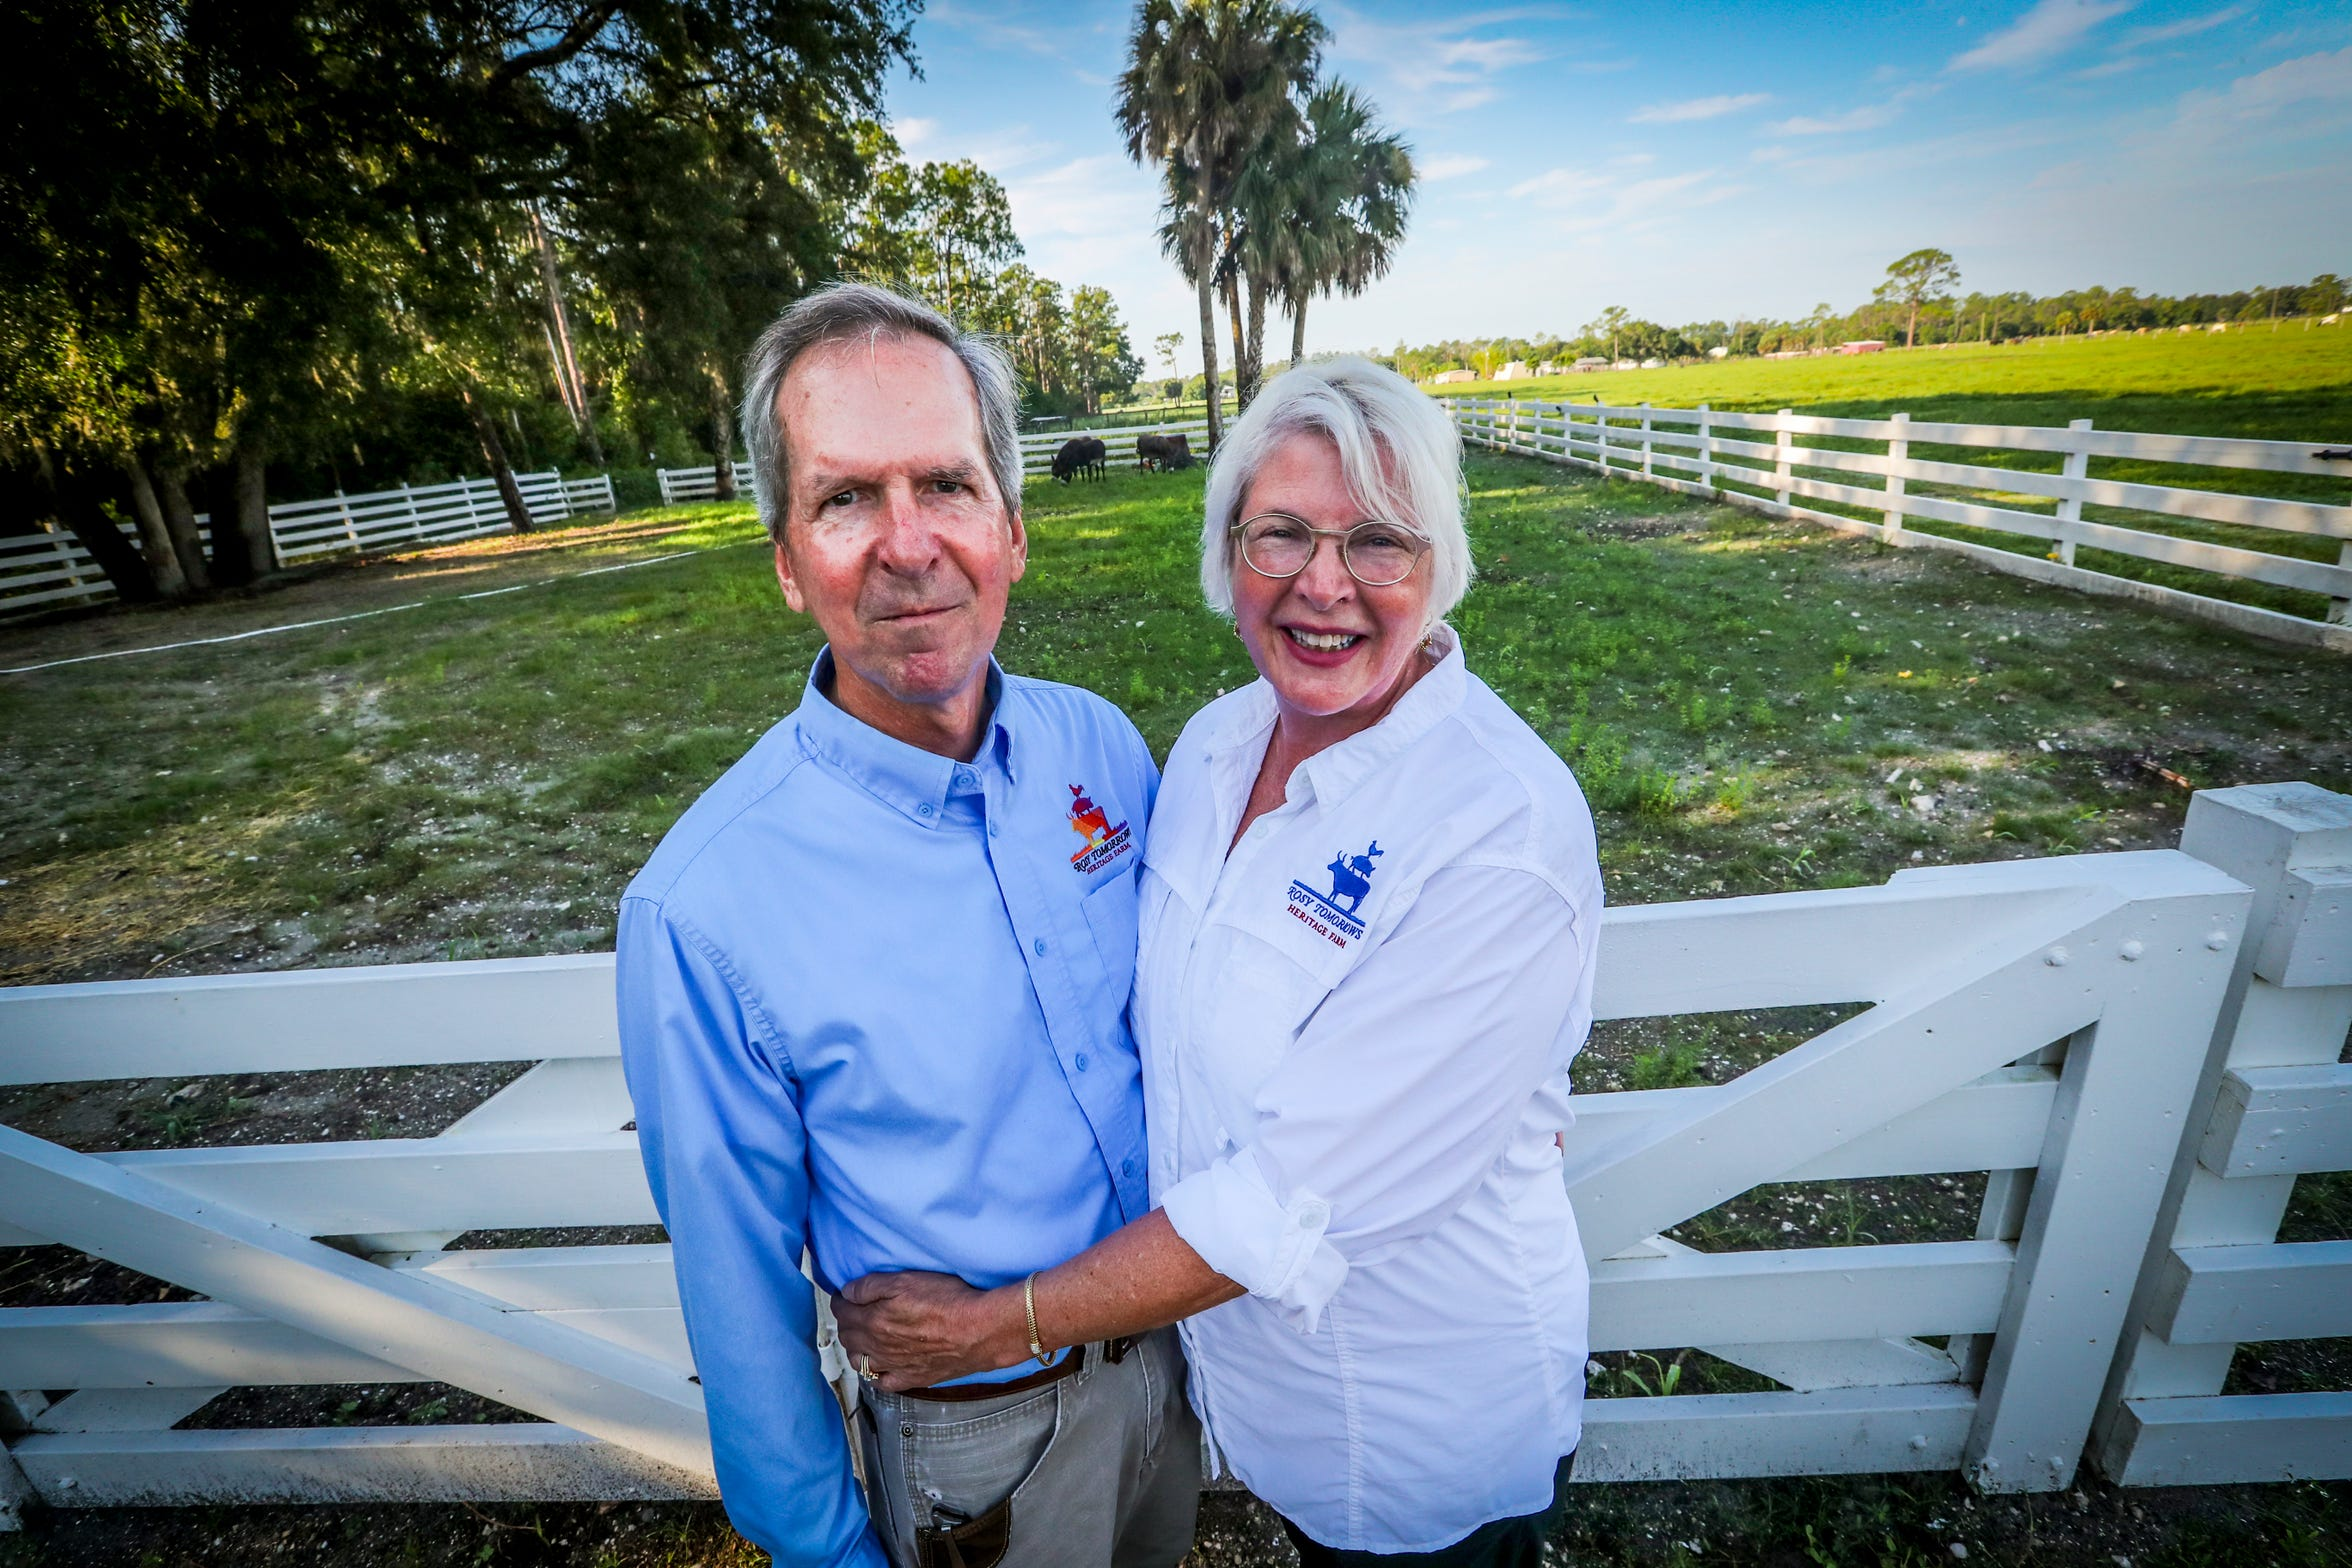 Rose O'Dell King and Gary King have transformed 101 acres of North Fort Myers farm land into Rosy Tomorrows, a farm-restaurant dedicated to changing how people eat in Florida.